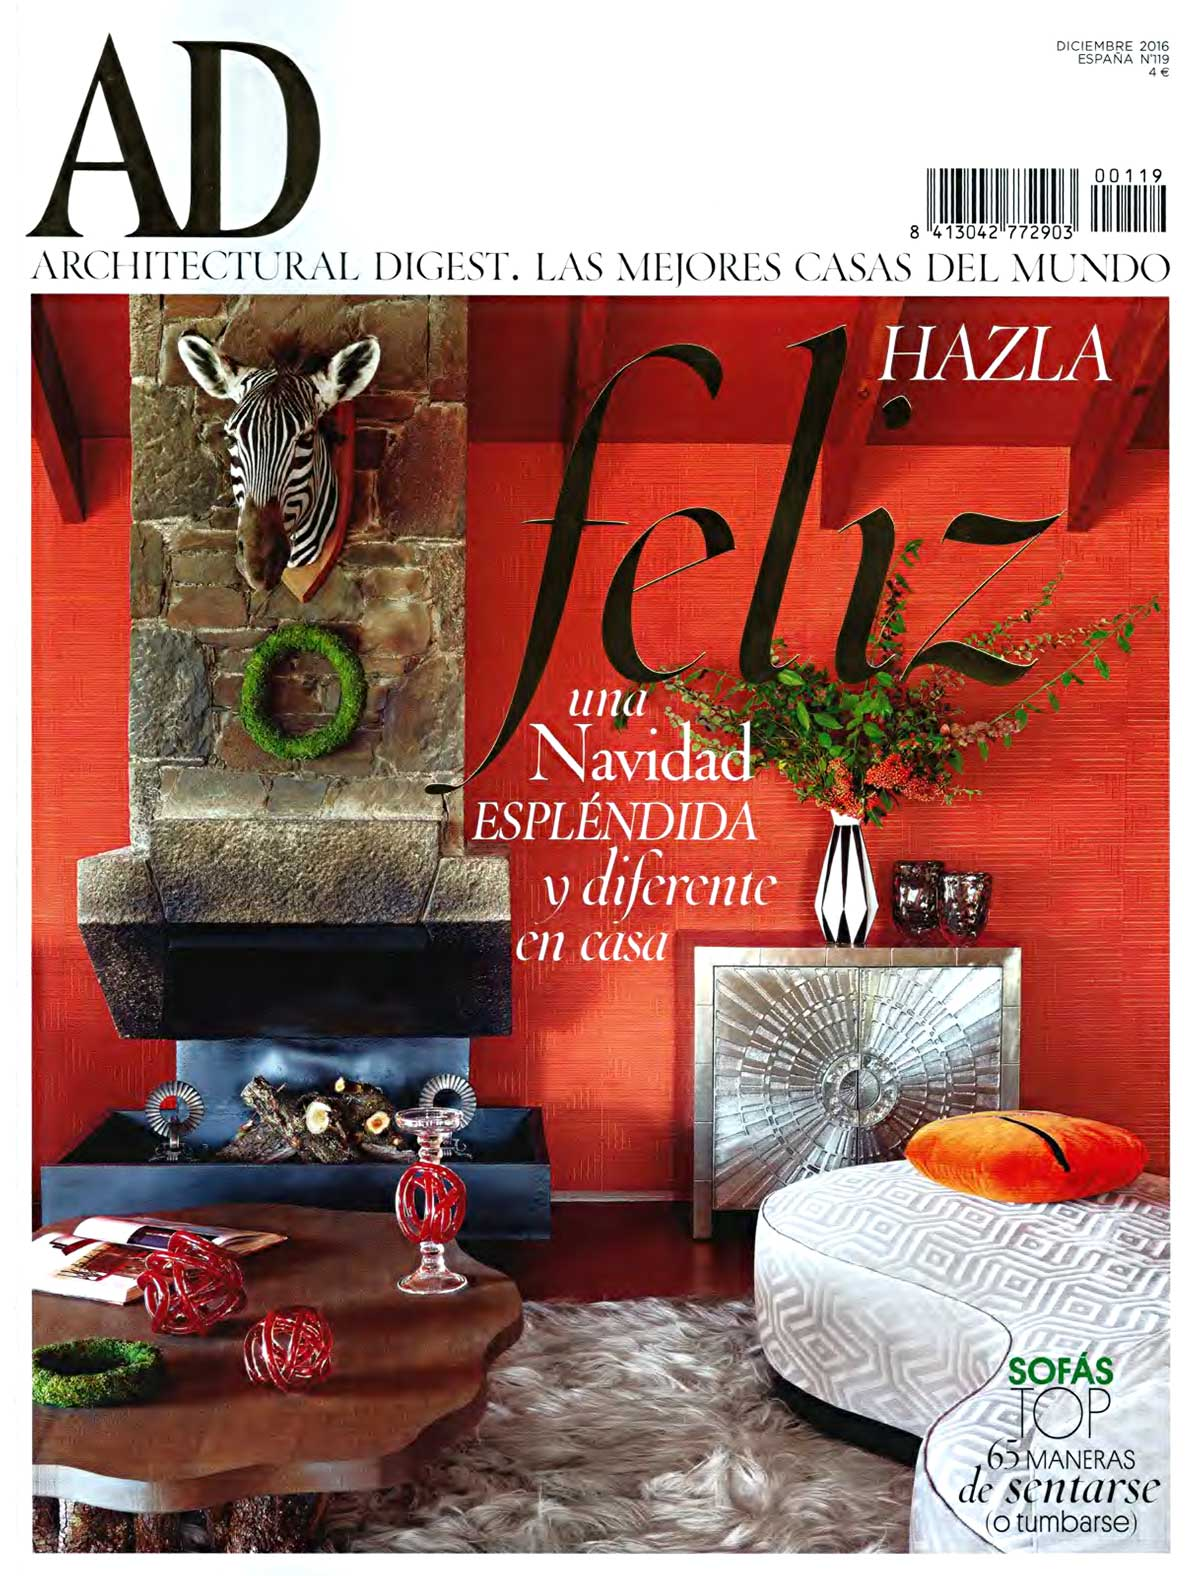 AD Spain #13